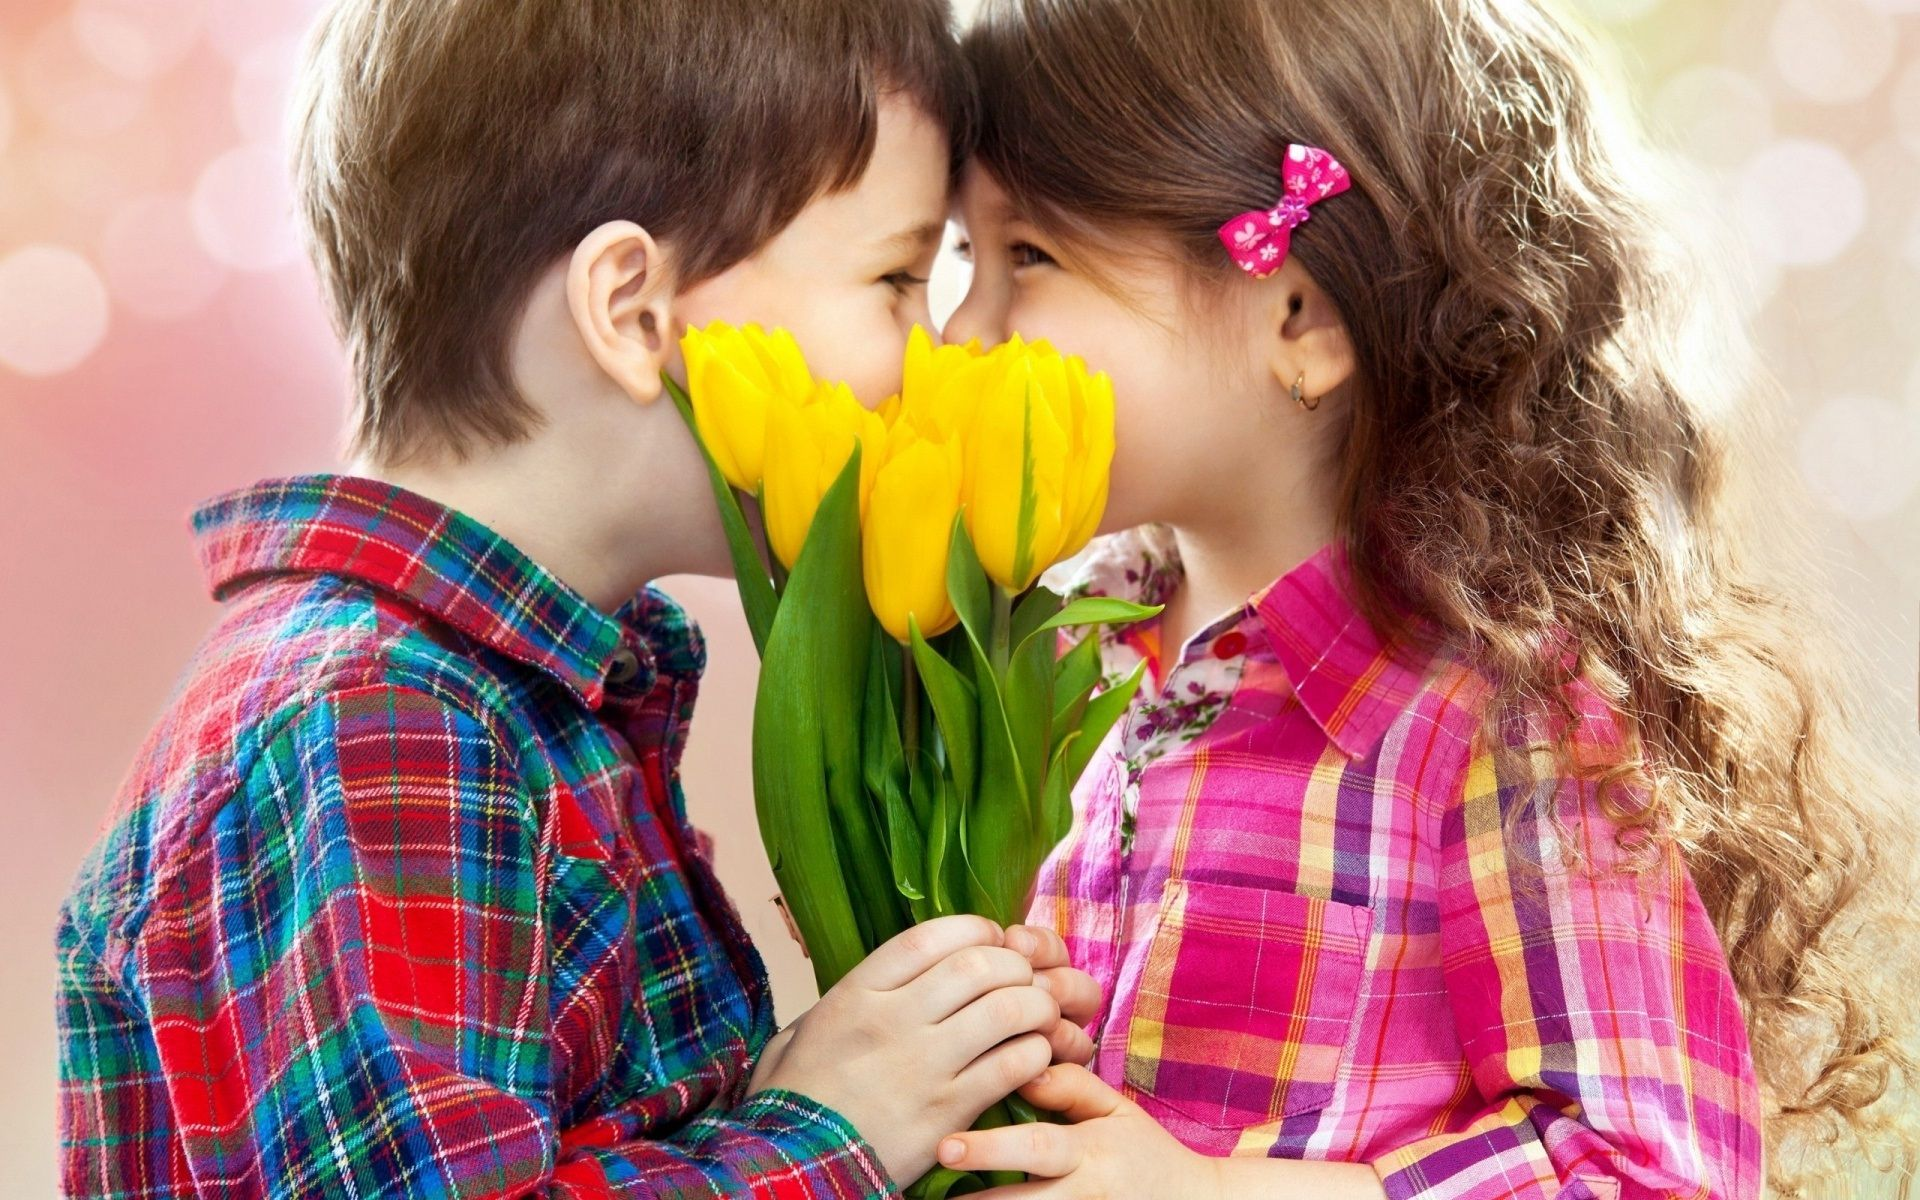 Baby couple Wallpaper Widescreen cute Wallpapers Pinterest More couple wallpaper and ...